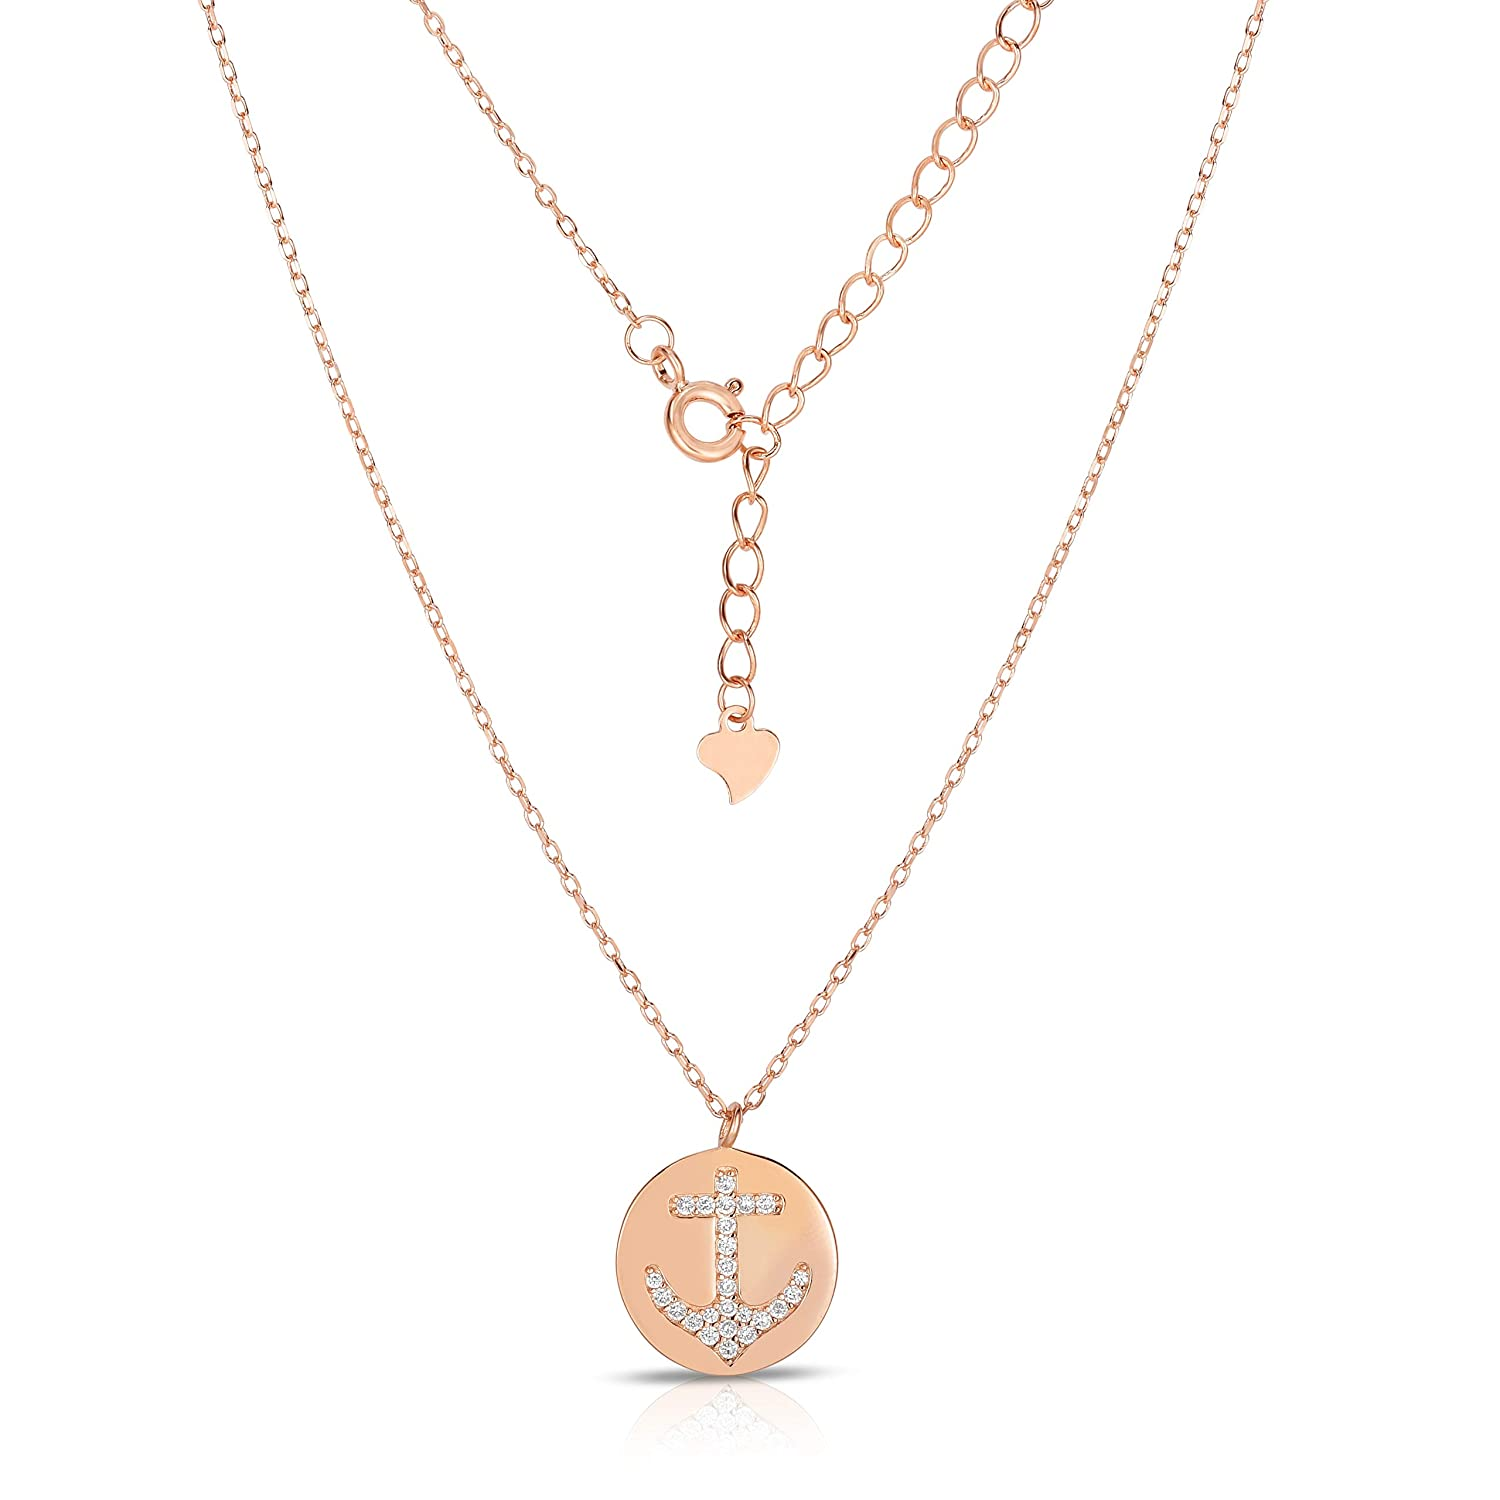 Unique royal jewelry Solid 925 Sterling Silver Cubic Zirconia Nautical Anchor Pendant and Continuous Adjustable Length Necklace 16-18 14K Rose Gold Plated Silver